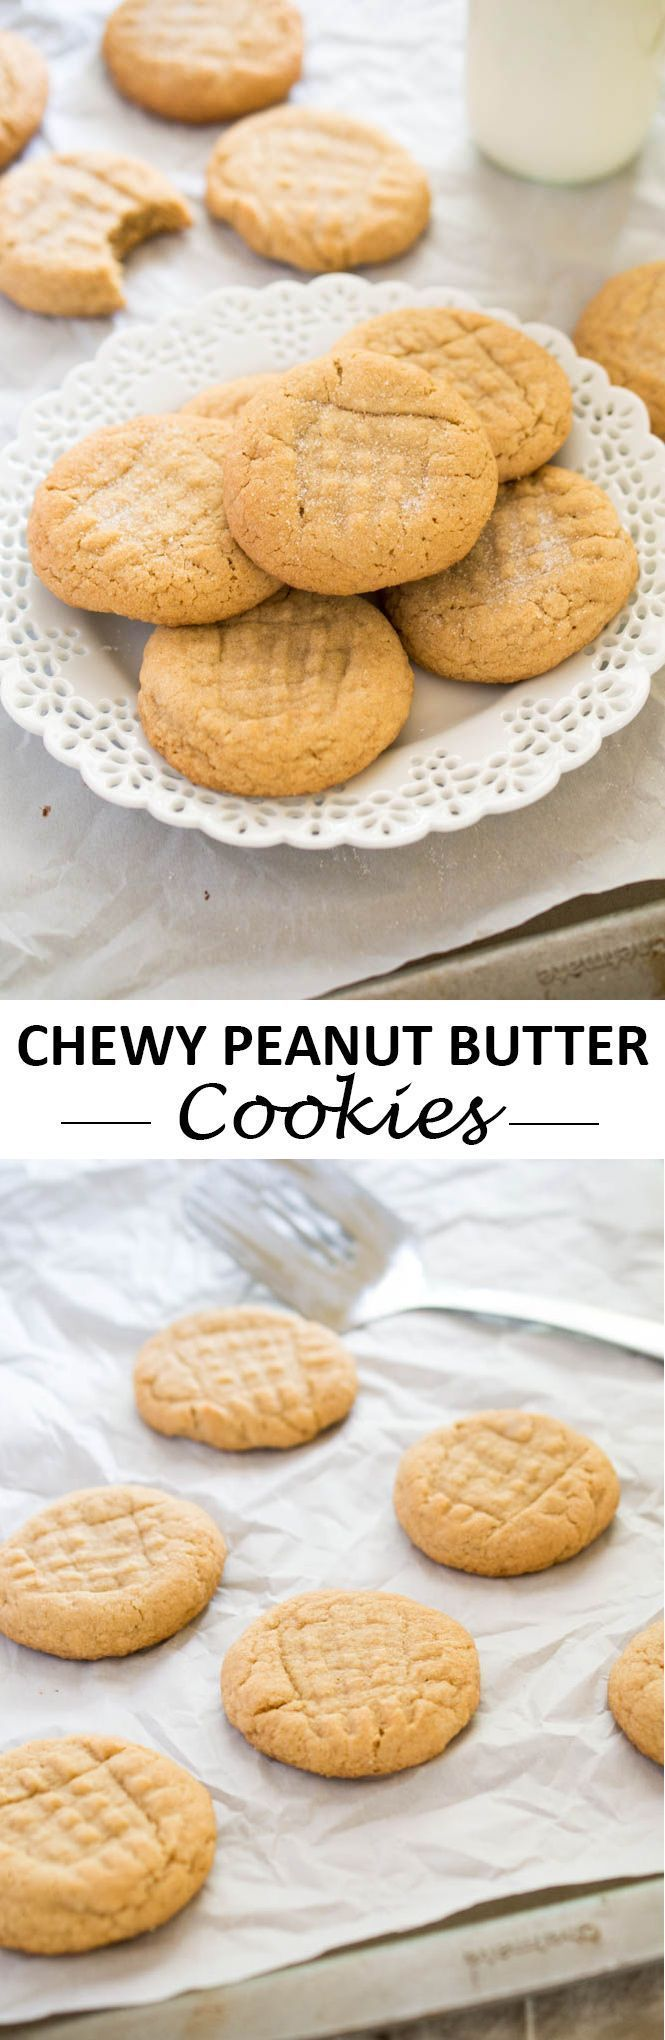 Quick and Easy Chewy Peanut Butter Cookies. These cookies are super thick, melt in your mouth and can be made in 20 minutes or less! | chefsavvy.com #recipe #peanut #butter #cookies #dessert